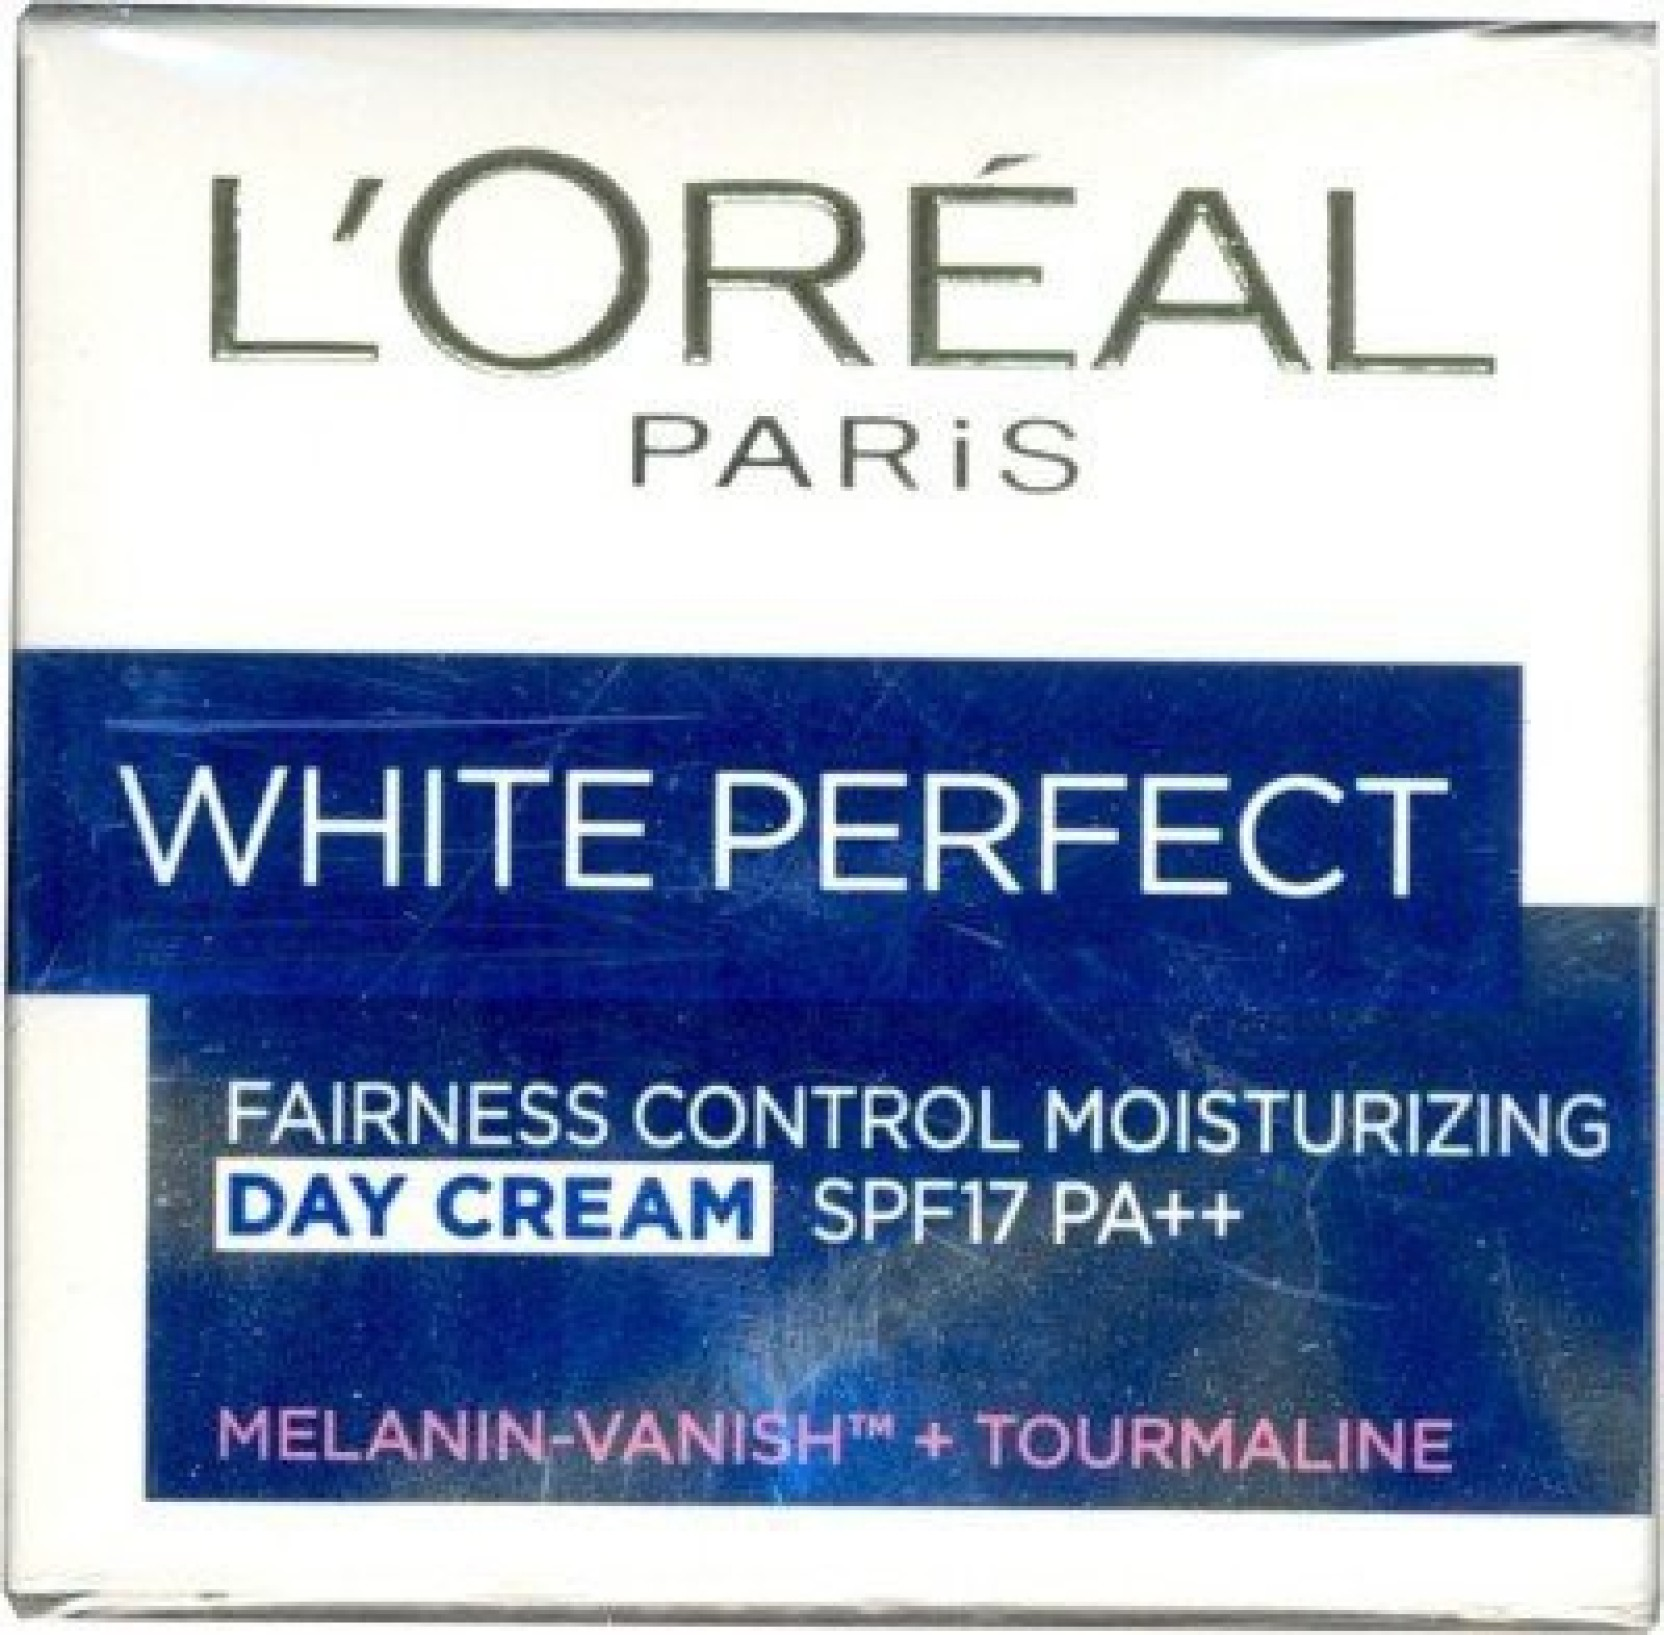 Loreal White Perfect Moisturizin Day Cream Spf17 Pa Price In Spf 17 Whitening Even Tone On Offer